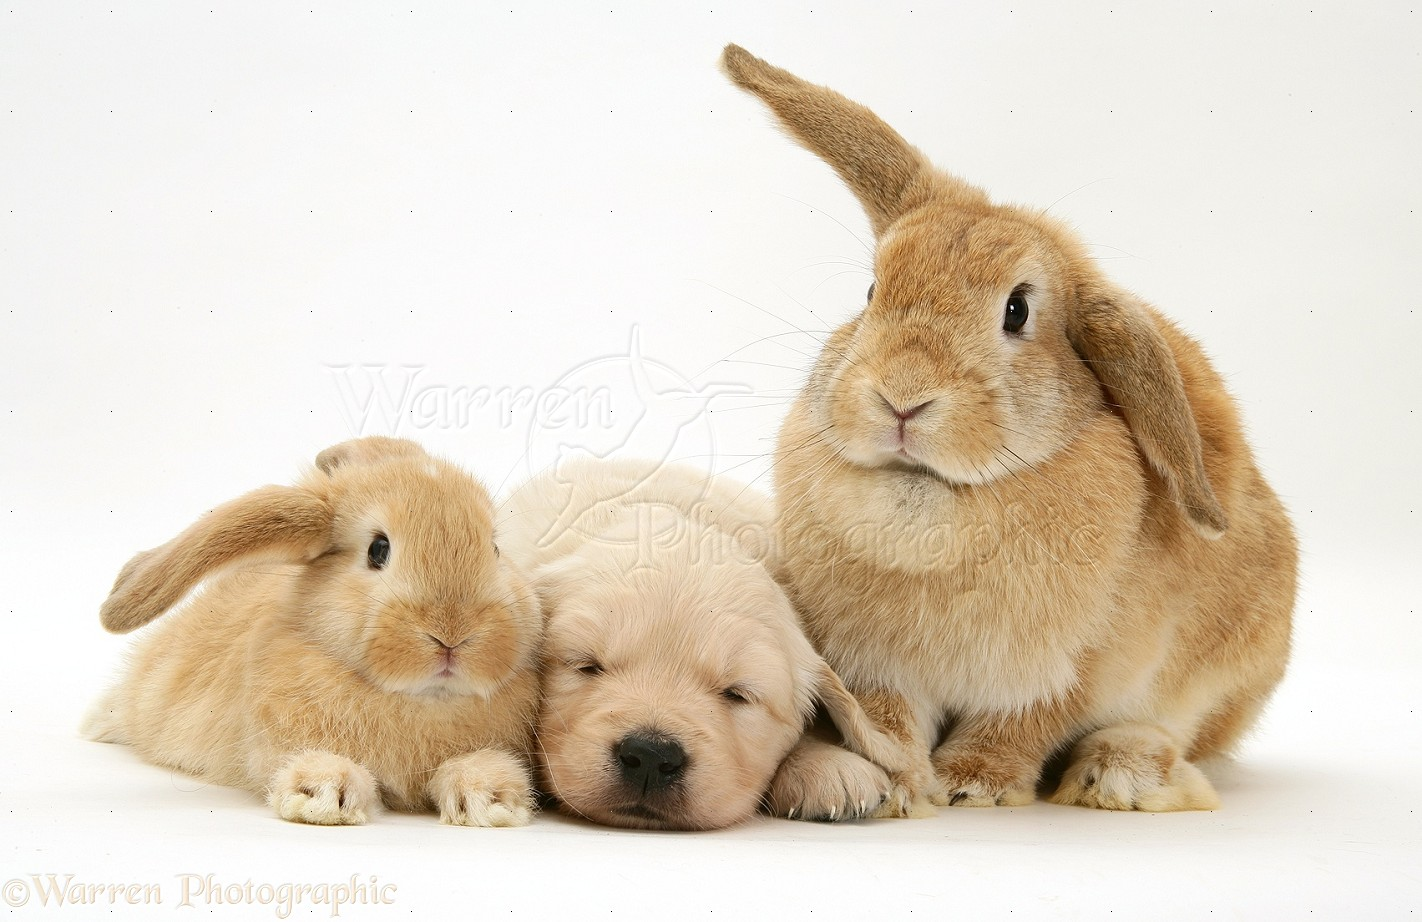 WP10576 Sandy Lop doe and baby rabbits with Golden Retriever pup.